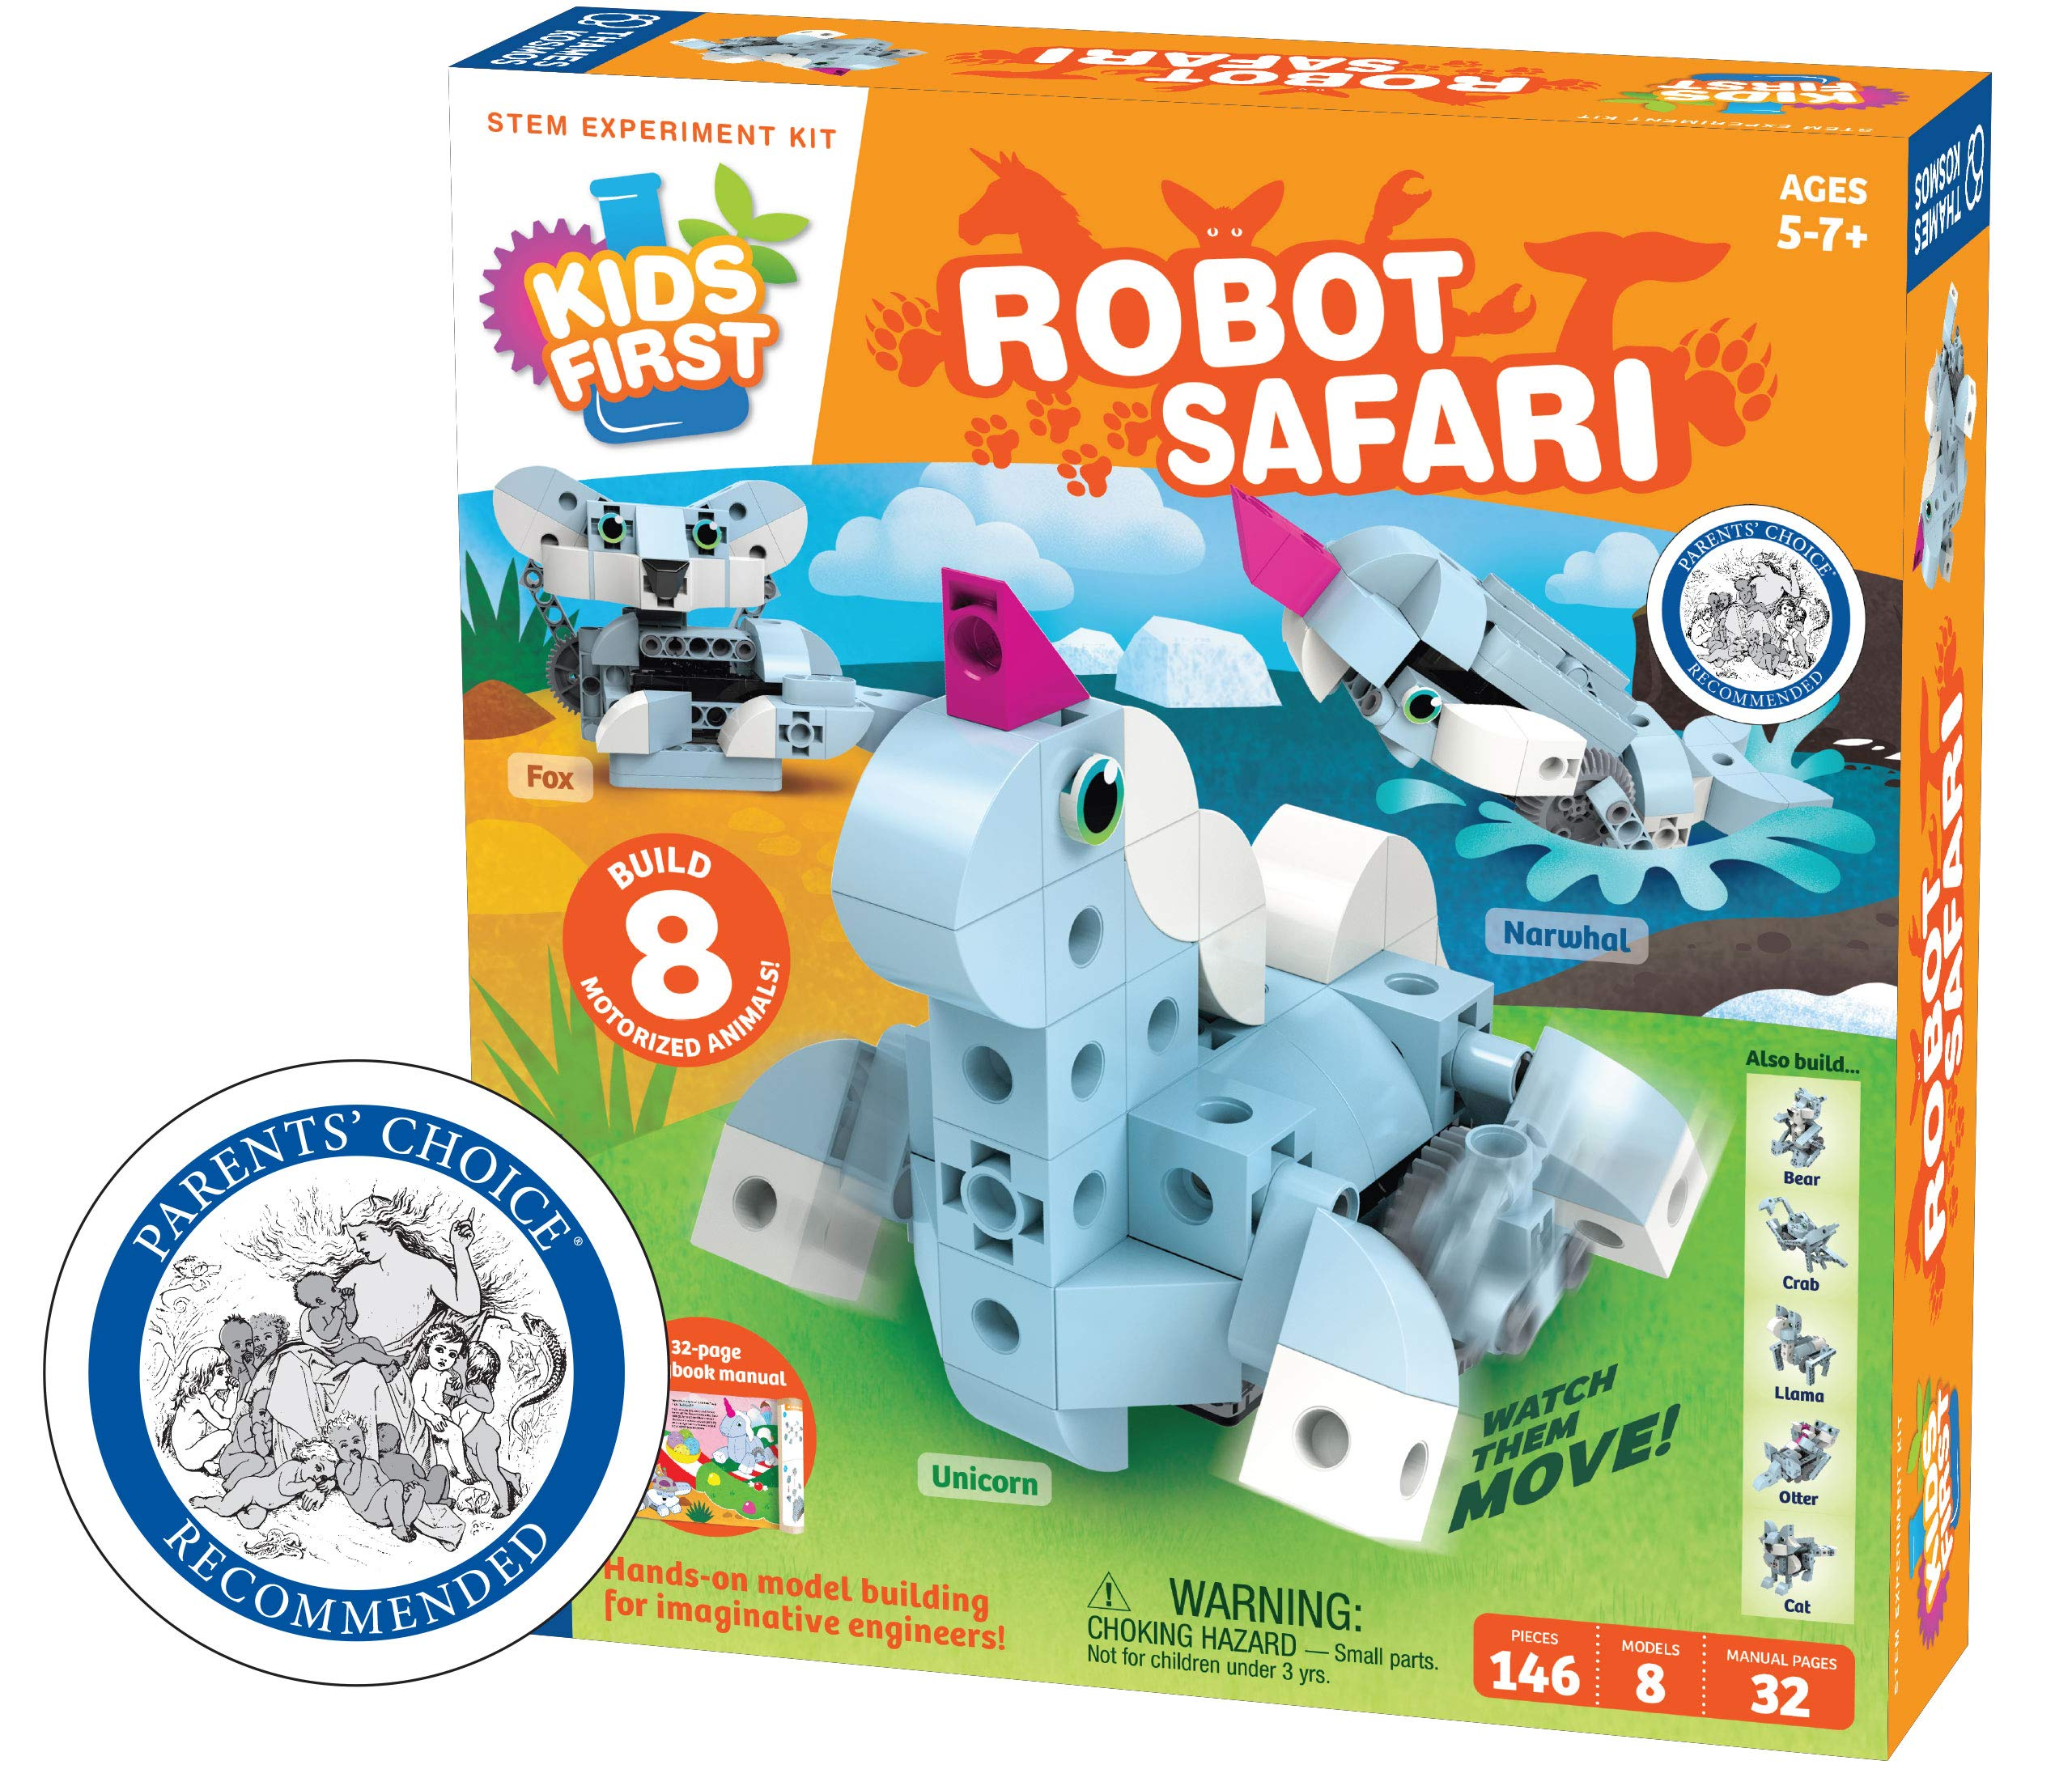 Thames & Kosmos Kids First: Robot Safari - Introduction to Motorized Machines Science Experiment Kit for Ages 5 to 7, Build 8 Robotic Animals Including A Unicorn, Llama, Narwhal & More by Thames & Kosmos